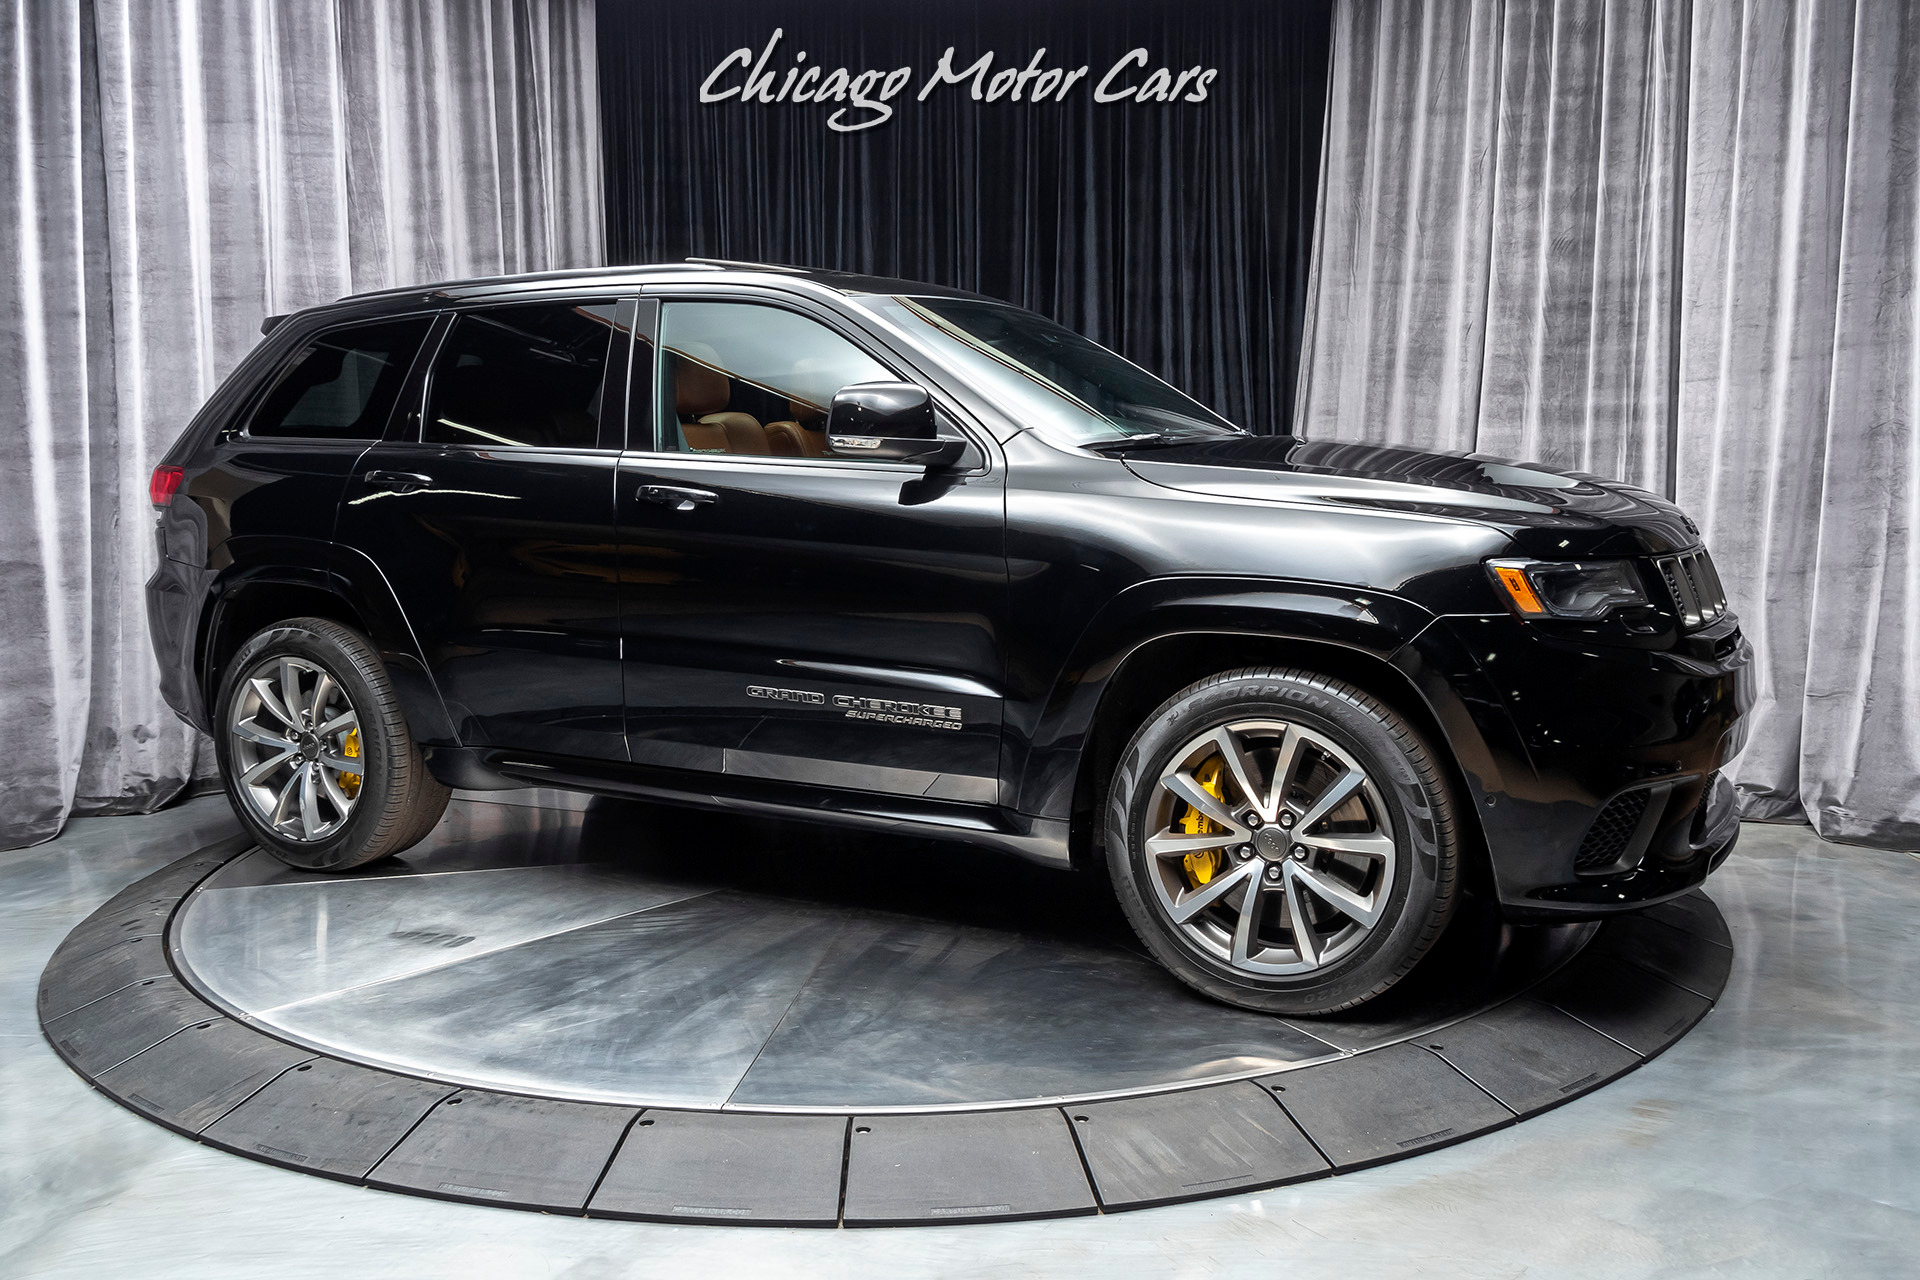 Used-2018-Jeep-Grand-Cherokee-Trackhawk-SUV-707-HP-HARMAN-KARDON-AUDIO-DUAL-PANE-SUNROOF